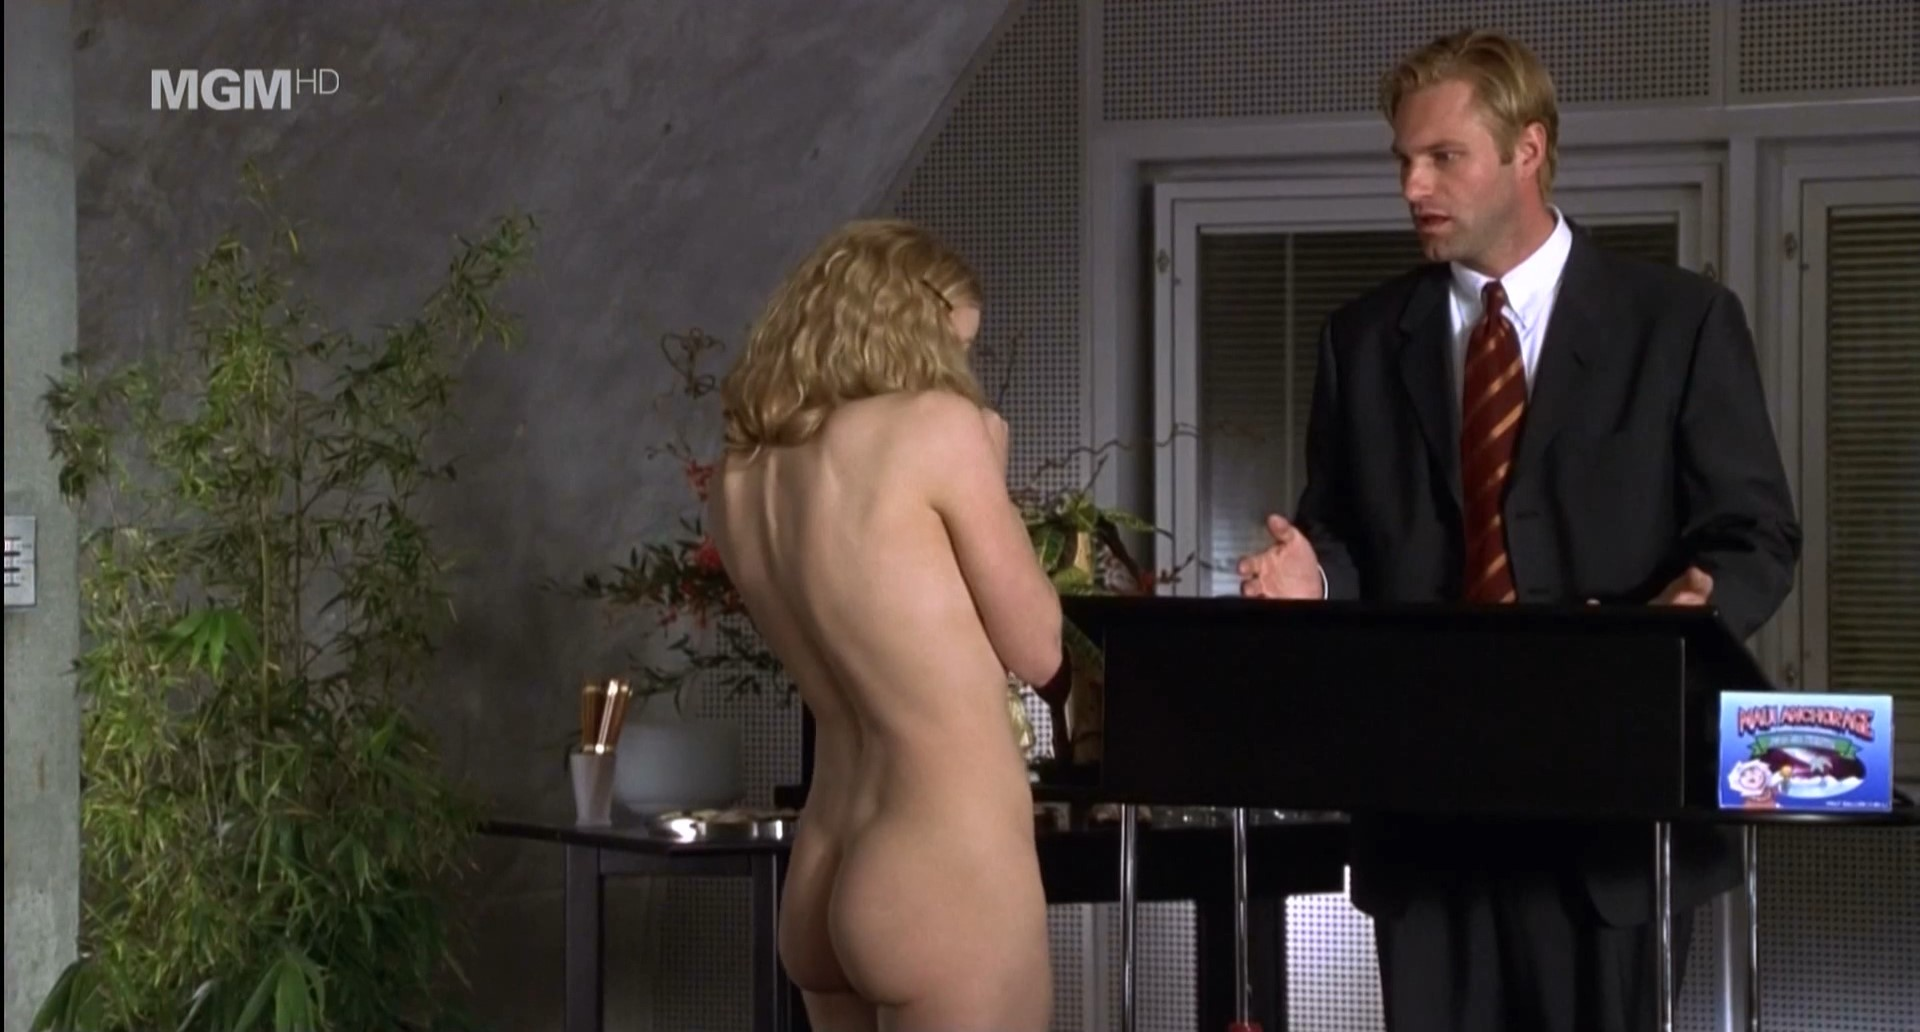 Elizabeth shue nude video really